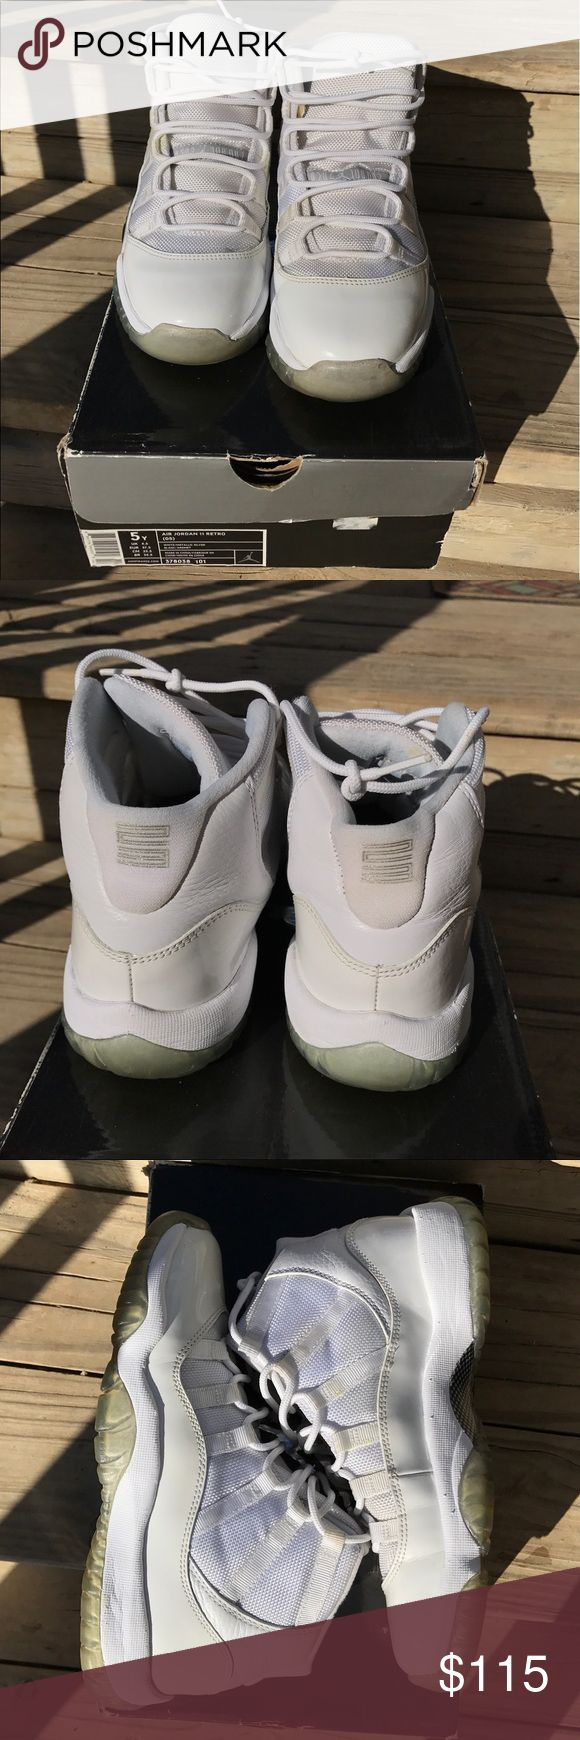 Anniversary 11s Comes with og box Jordan Shoes Sneakers